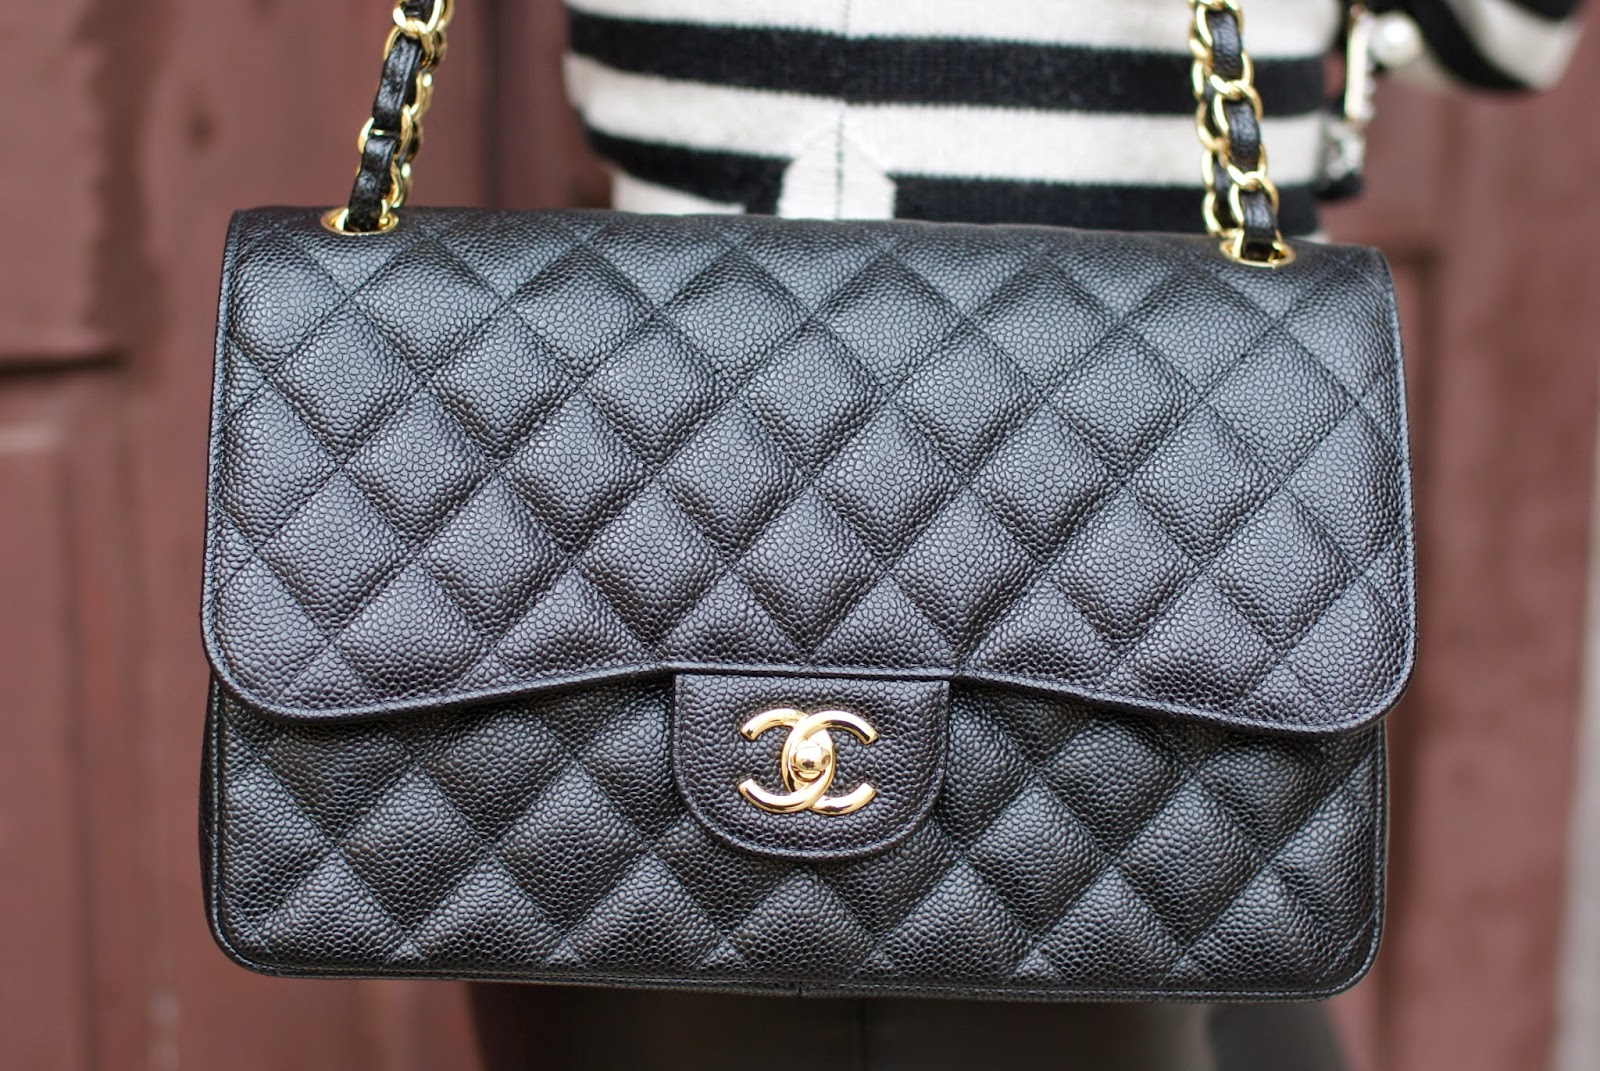 Chanel 2.55 classic flap in caviar leather, Fashion and Cookies, fashion blogger, fashion blog